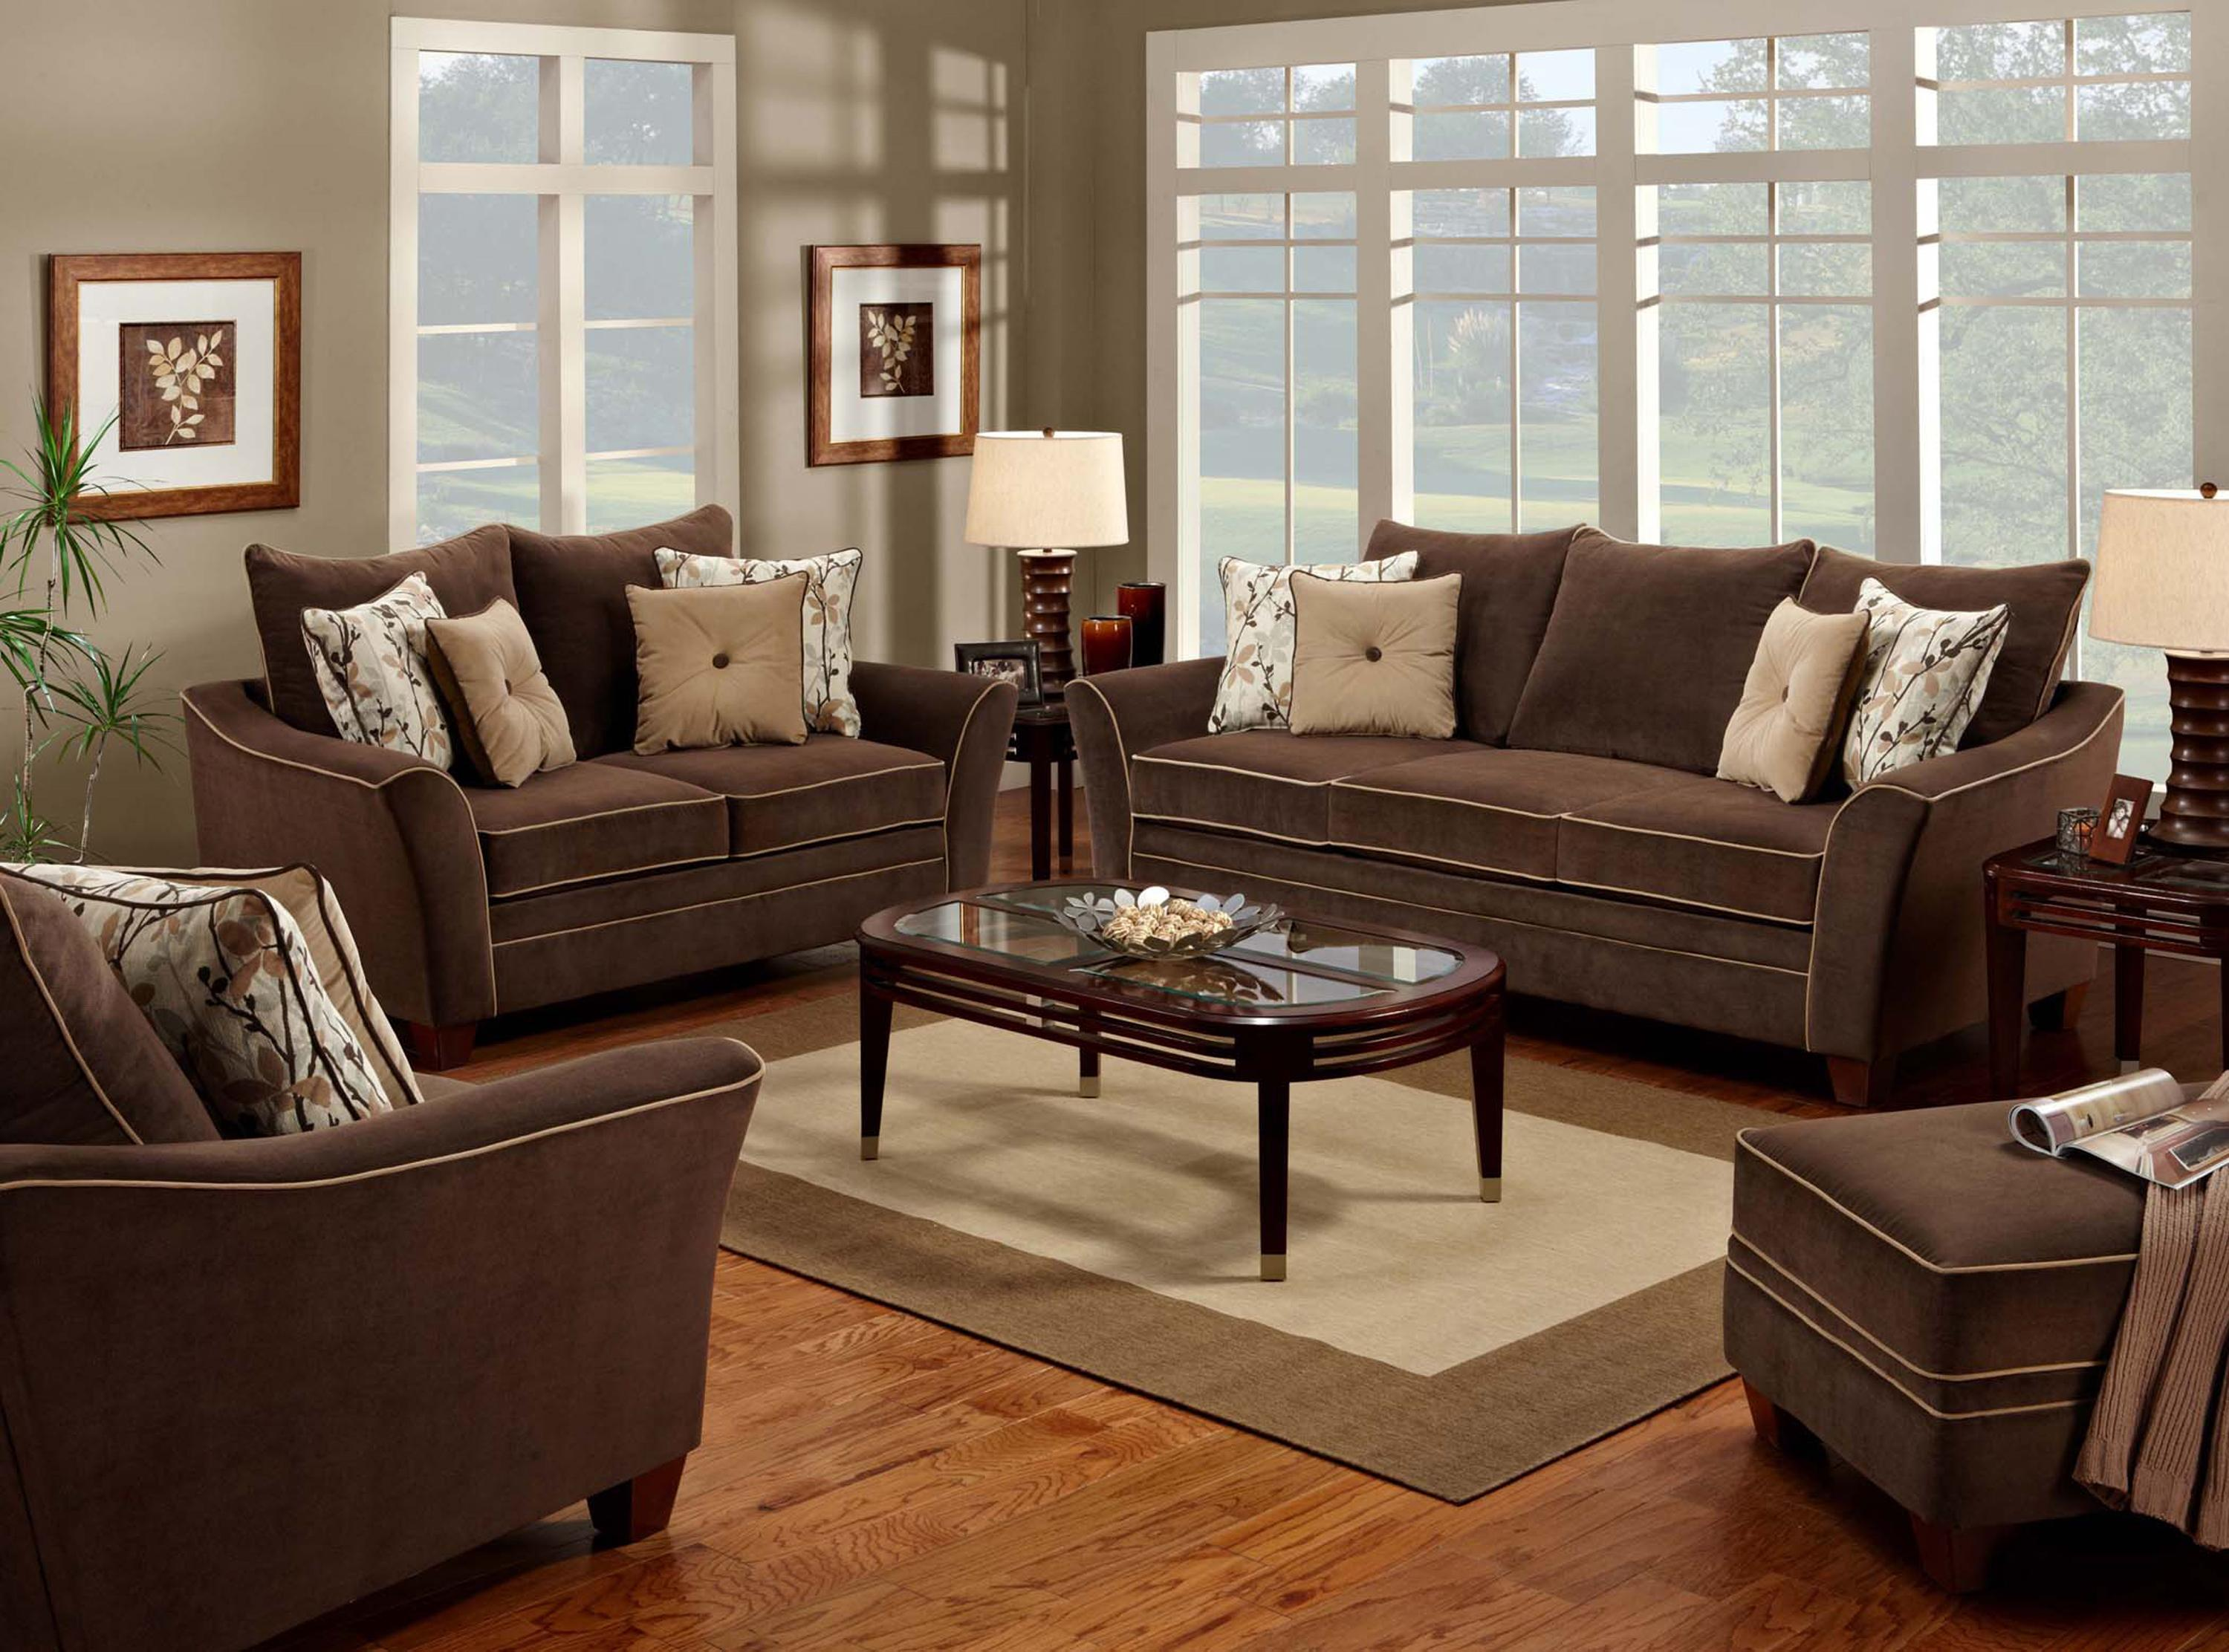 811 Bridgeport Stationary Living Room Group by Franklin at Furniture Superstore - Rochester, MN